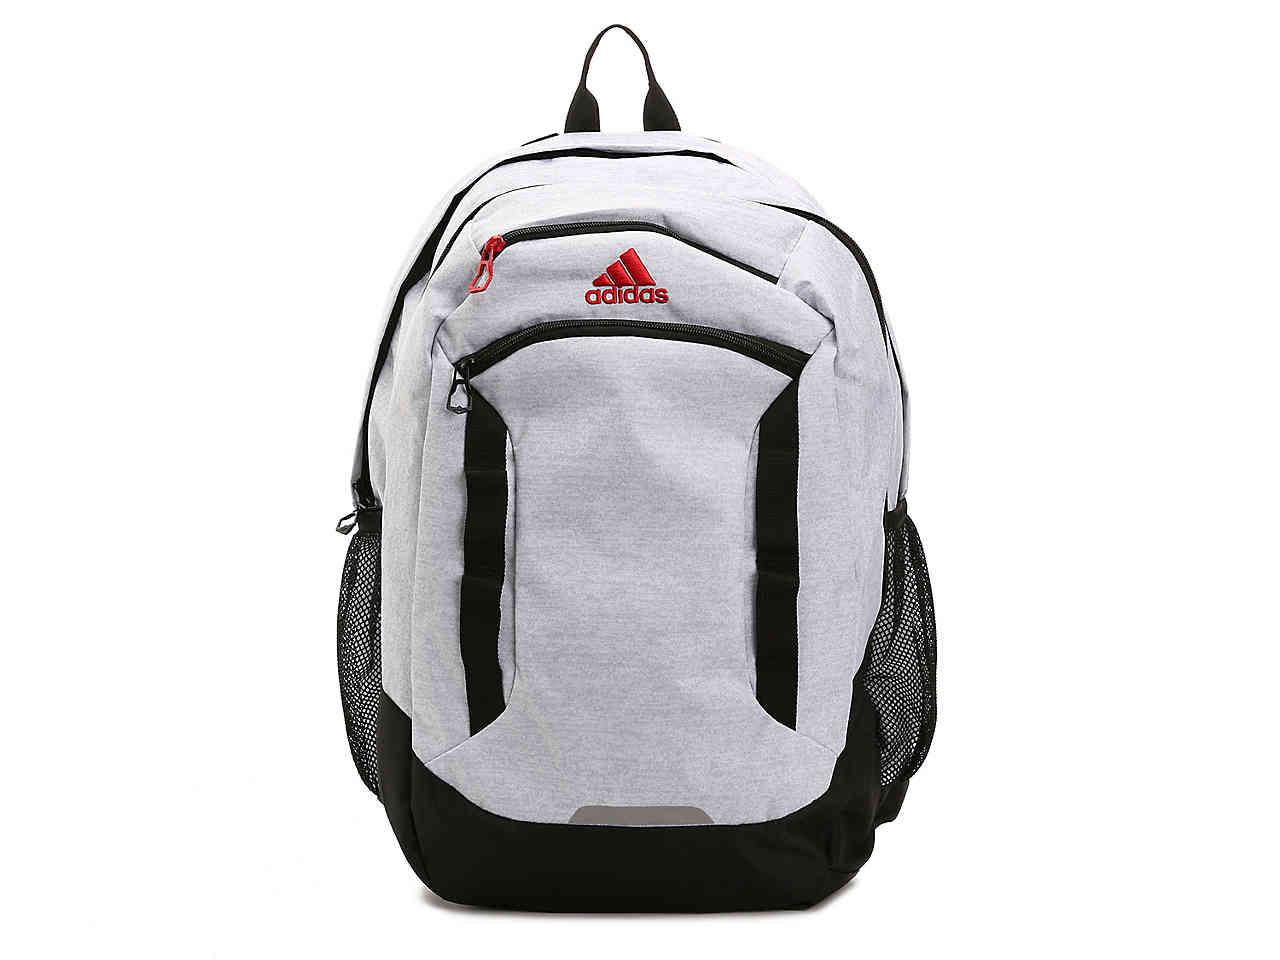 Lyst - Adidas Excel Iv Backpack in Black for Men